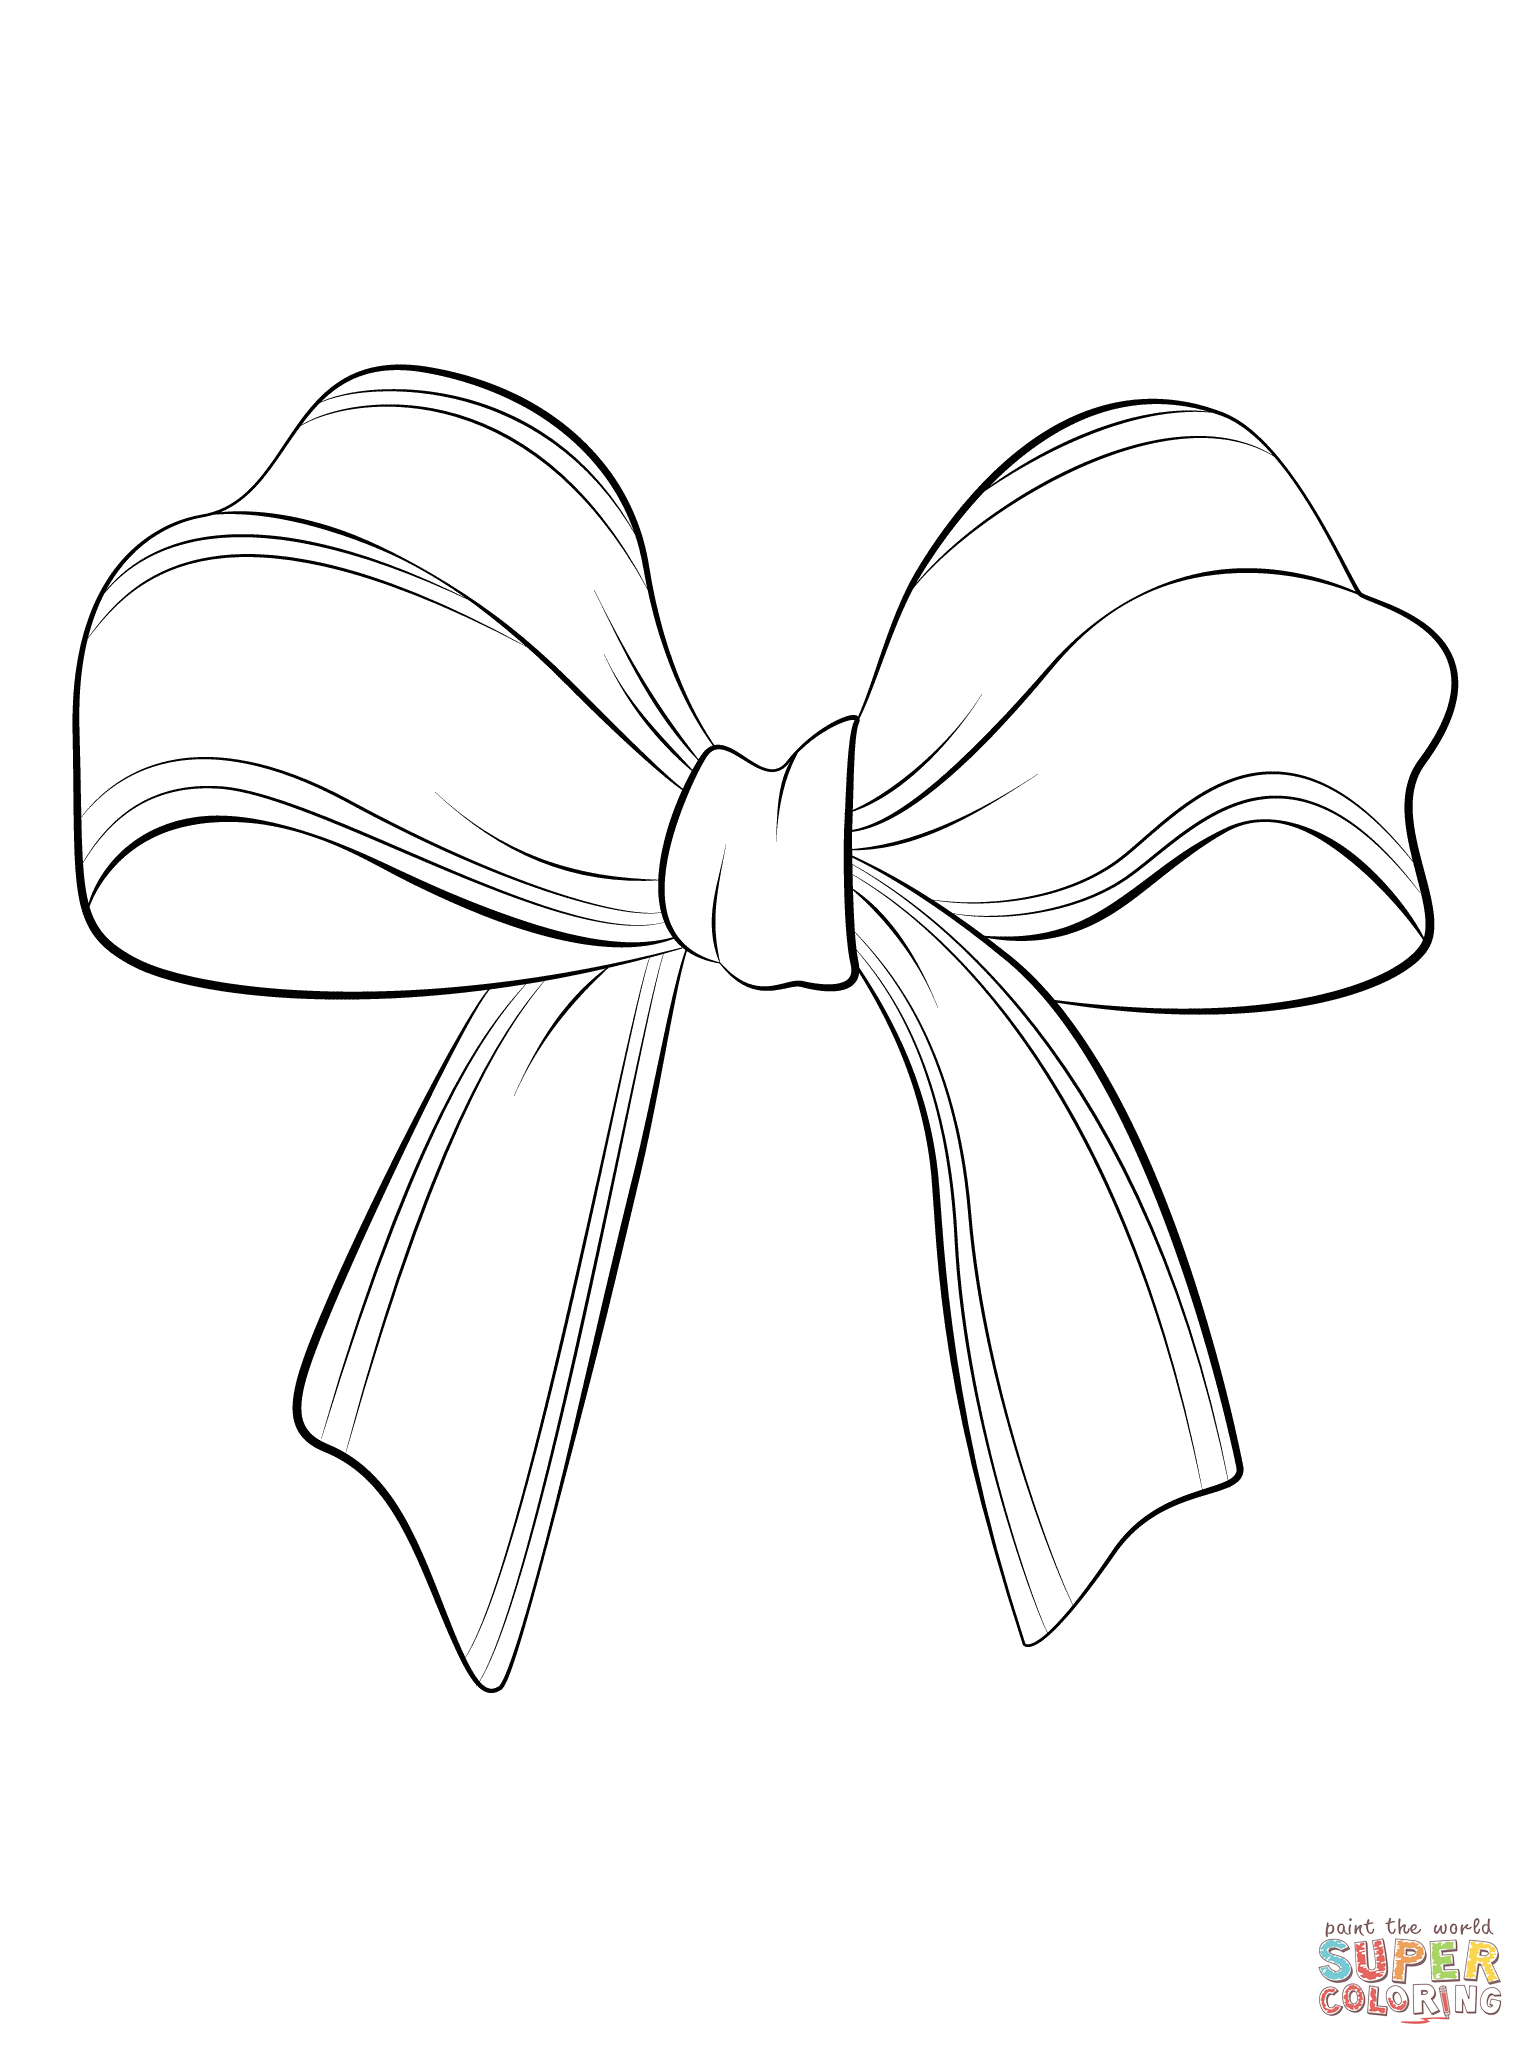 Christmas Bow Coloring Page Free Printable Coloring Pages Printable Coloring Pages Bow Drawing Free Printable Coloring Pages